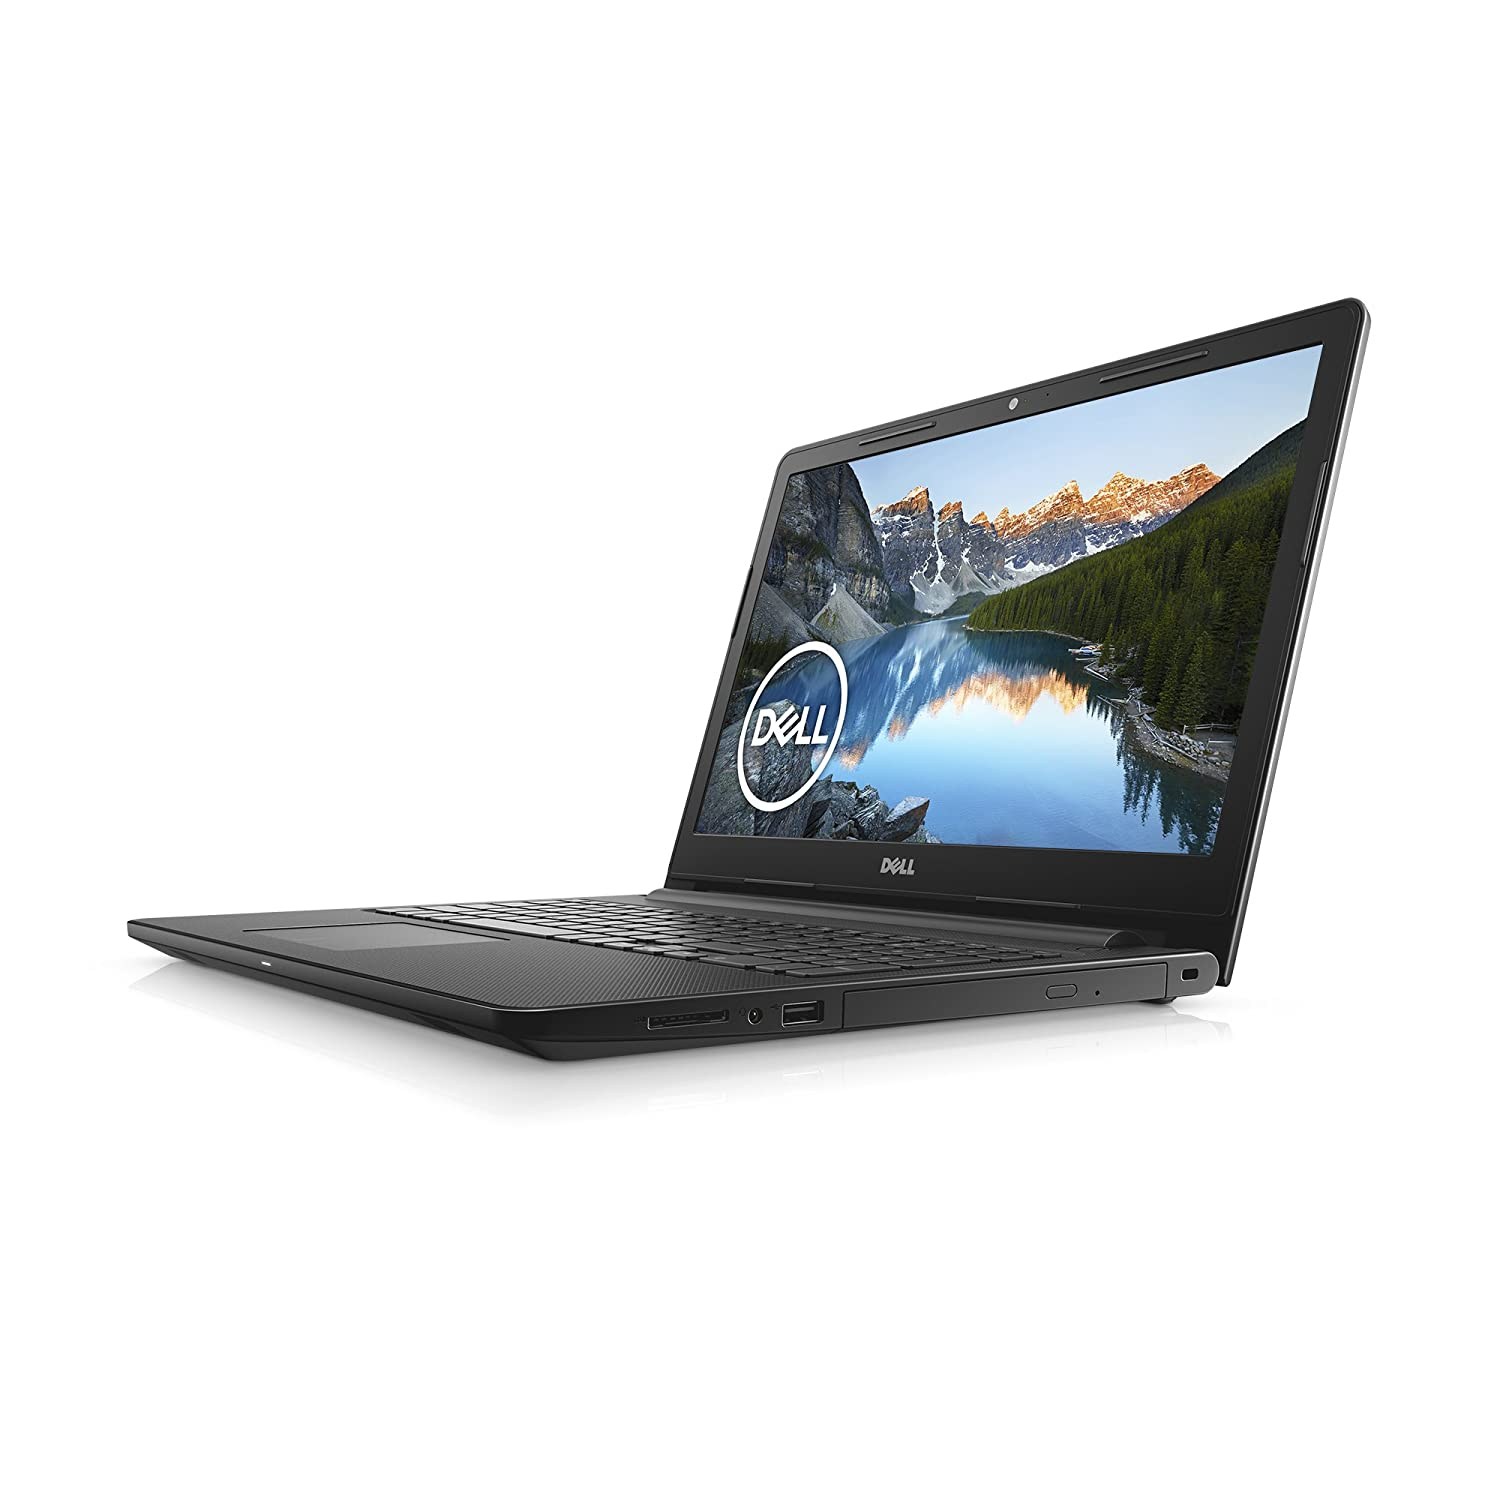 【正規通販】 Dell 7) ノートパソコン Inspiron 15 3565 AMD A6 ブラック 8GB 19Q31 SSD,/Windows 10/15.6 HD/4GB/1TB B07C75RZQP 7)【ハイエンド】Core-i7, 256GB SSD, 8GB, イタリアンジュエリー OE:98c2d145 --- arbimovel.dominiotemporario.com